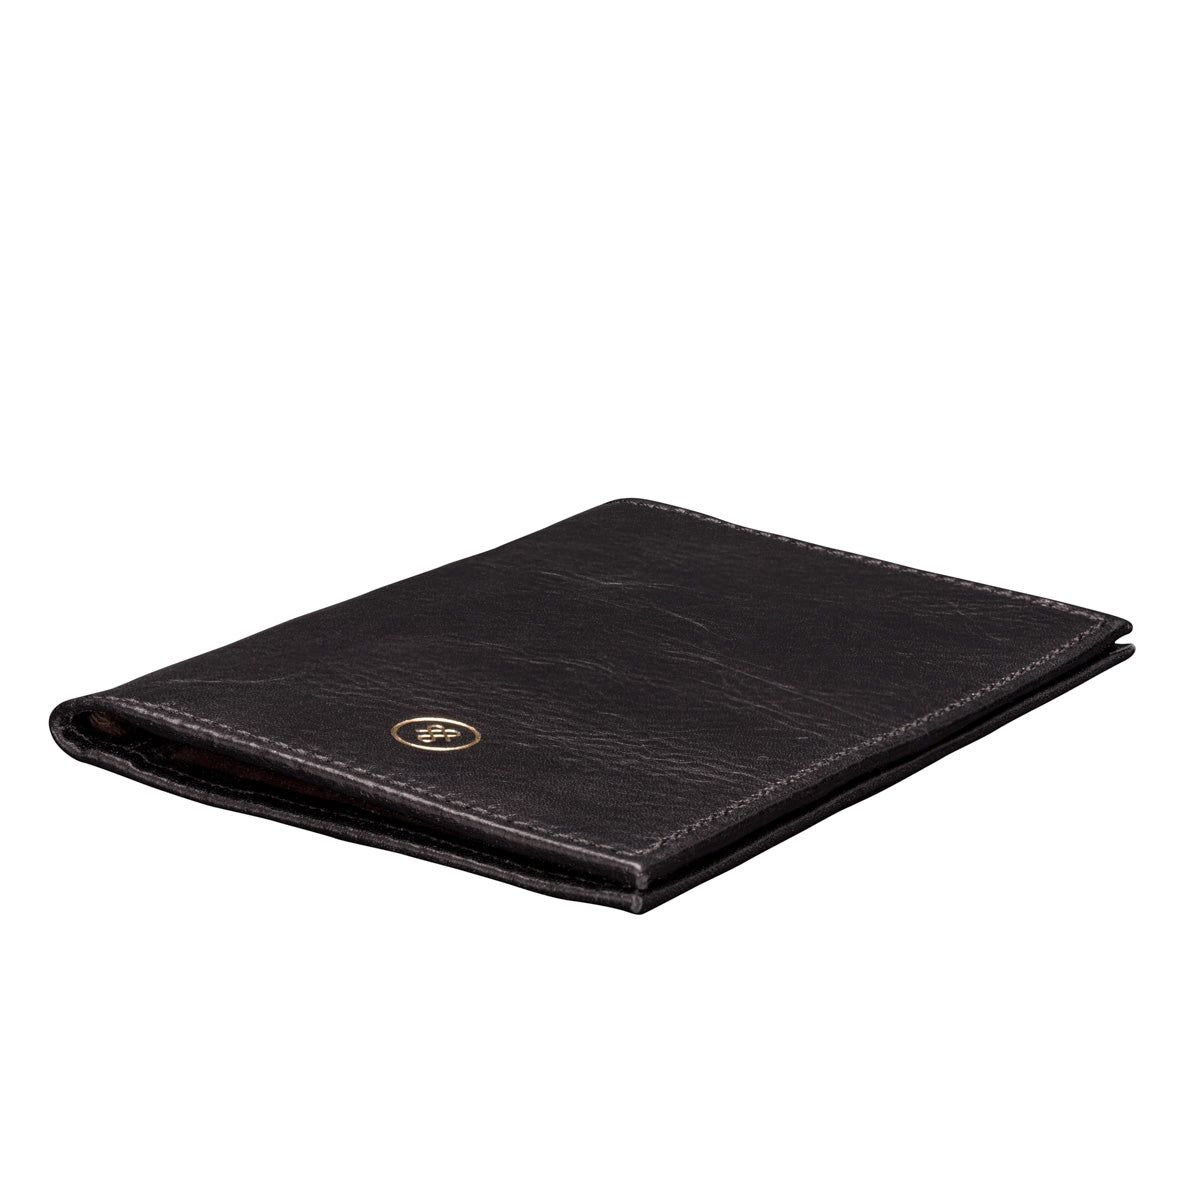 Image 4 of the 'Prato' Black Veg-Tanned Leather Passport Wallet